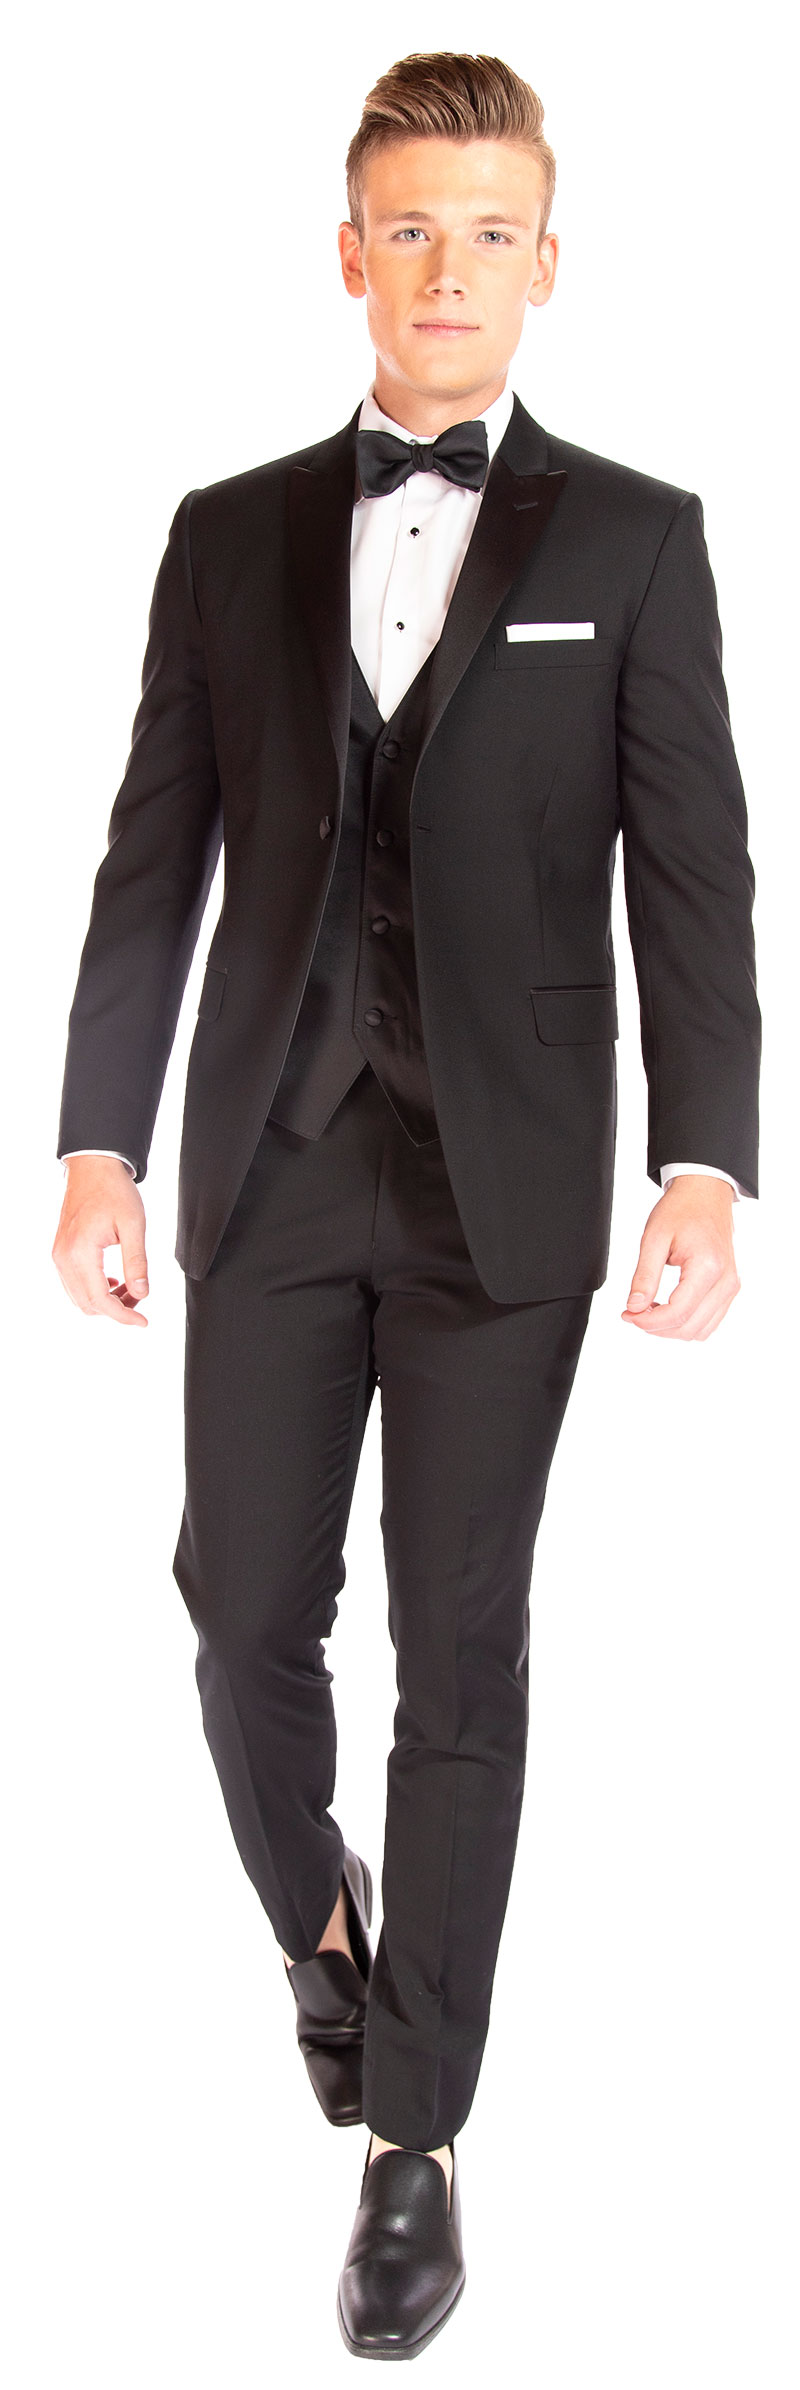 Rex Formalwear and Tuxedo Fit - Making Out of Town Measurements Easy